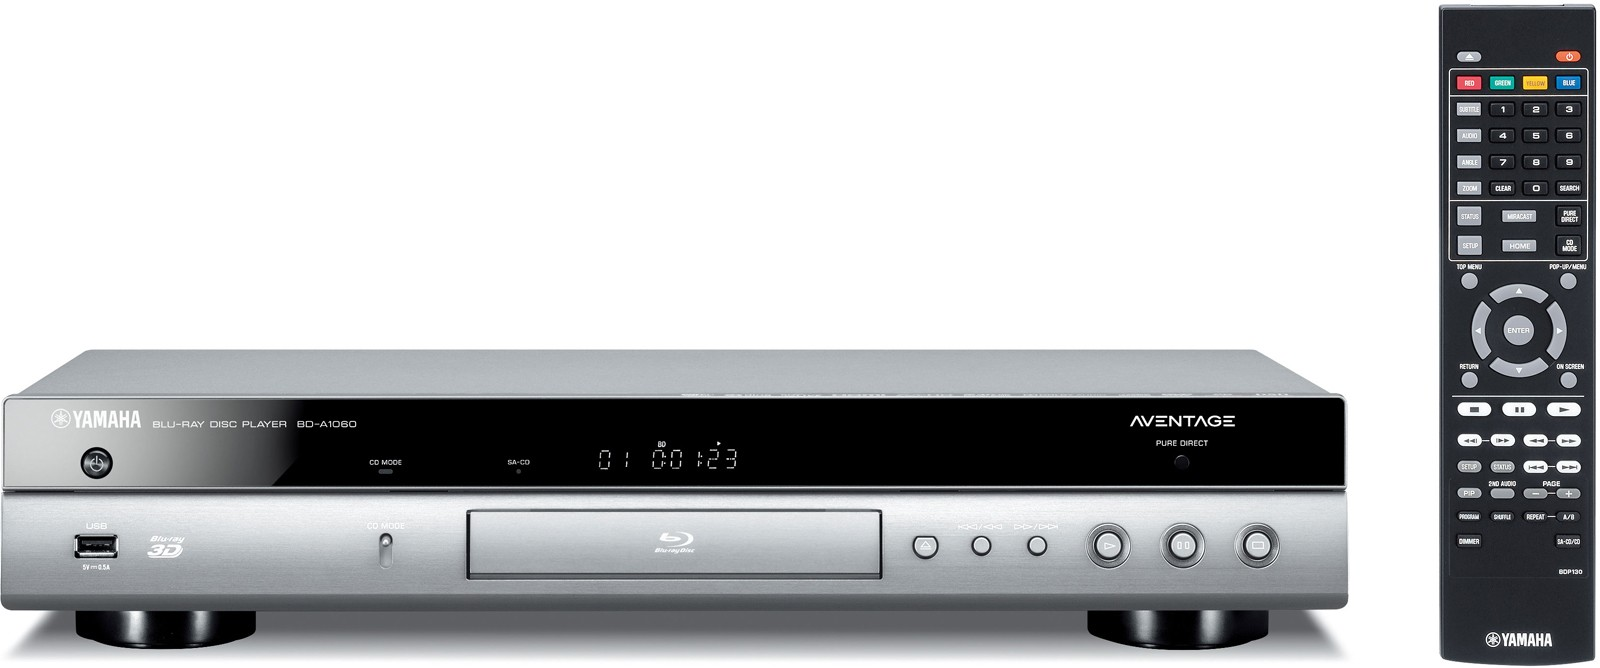 yamaha bd a1060 blu ray player at audio affair. Black Bedroom Furniture Sets. Home Design Ideas